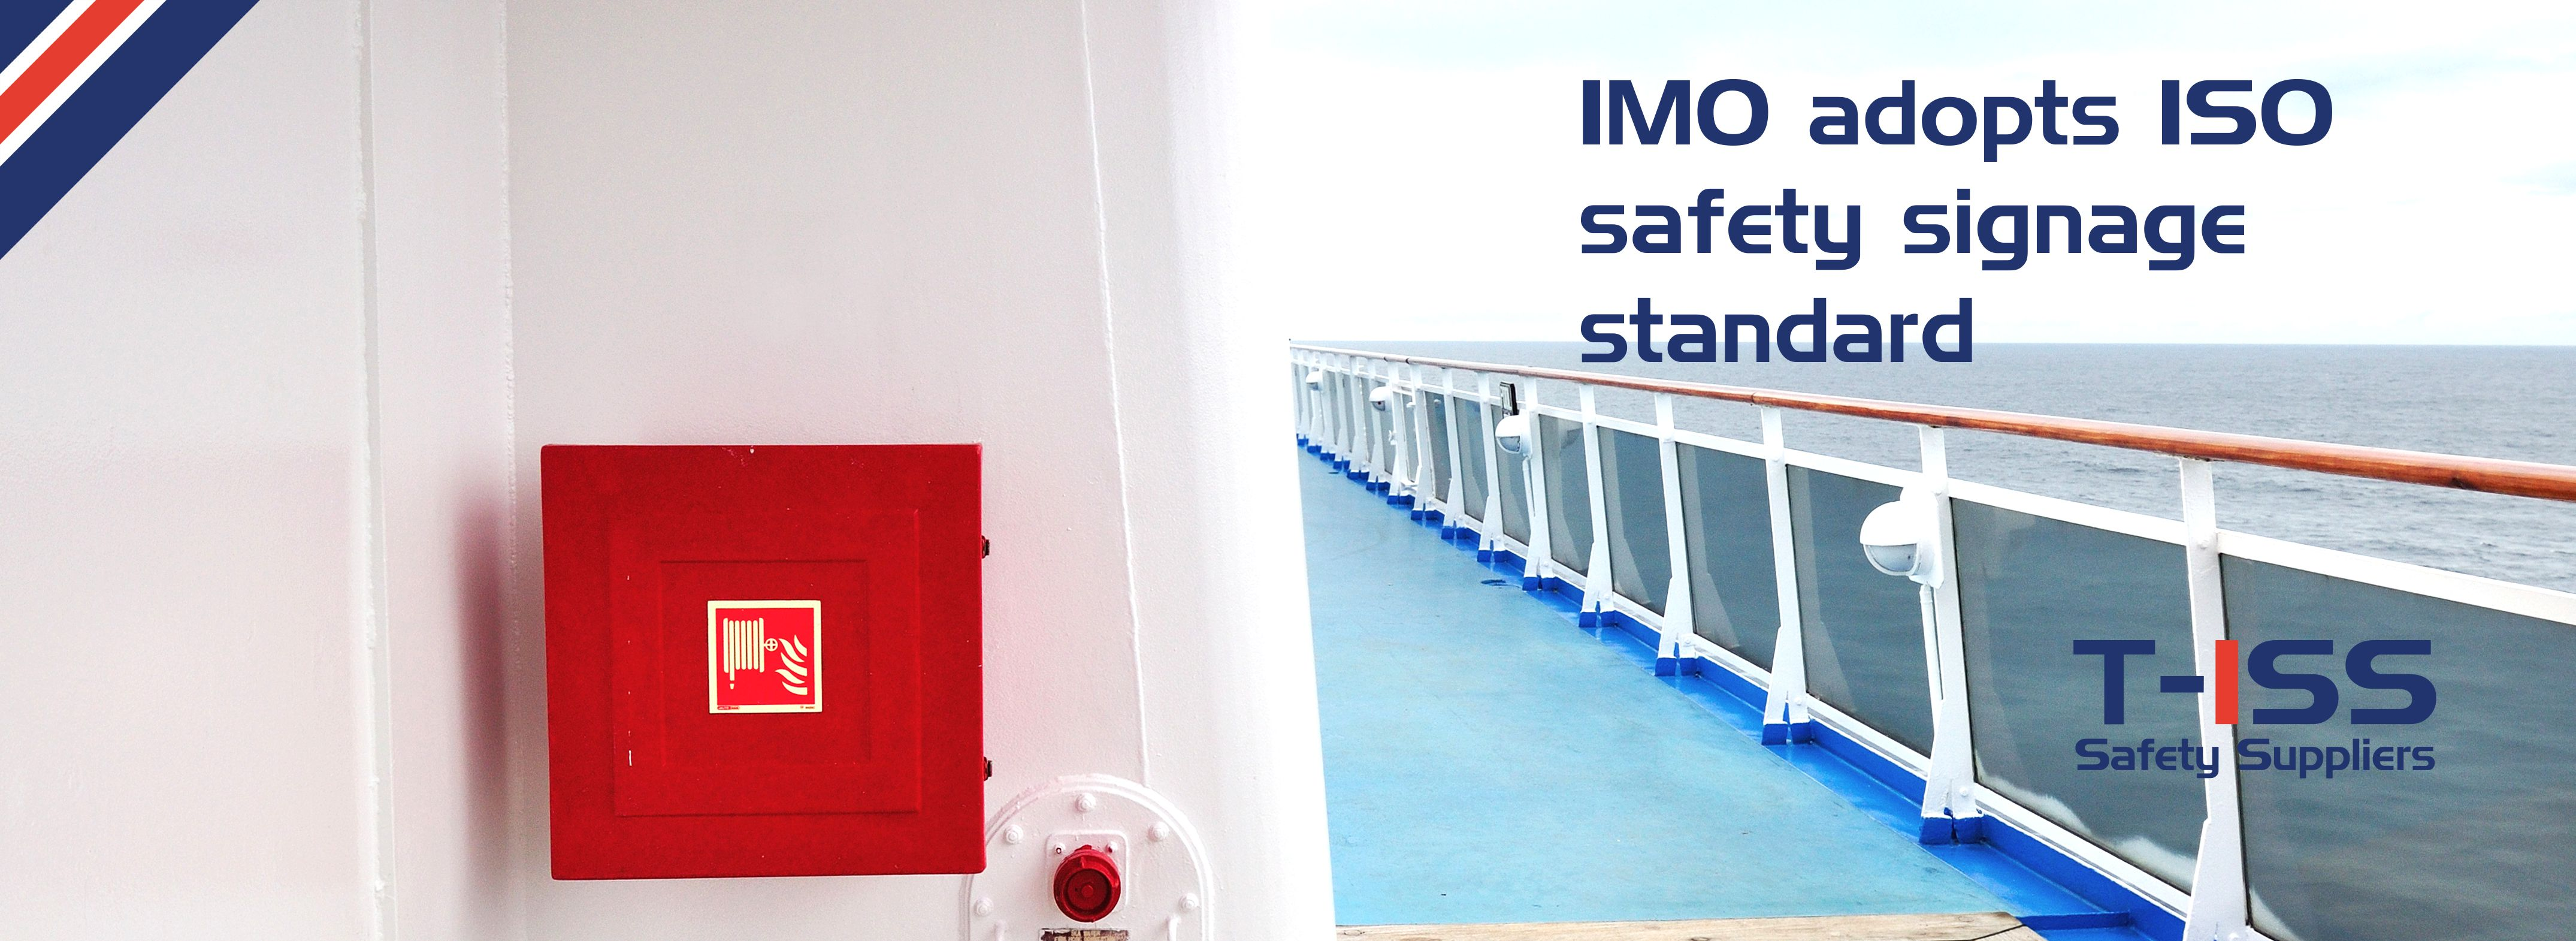 IMO adopts ISO safety signage standard